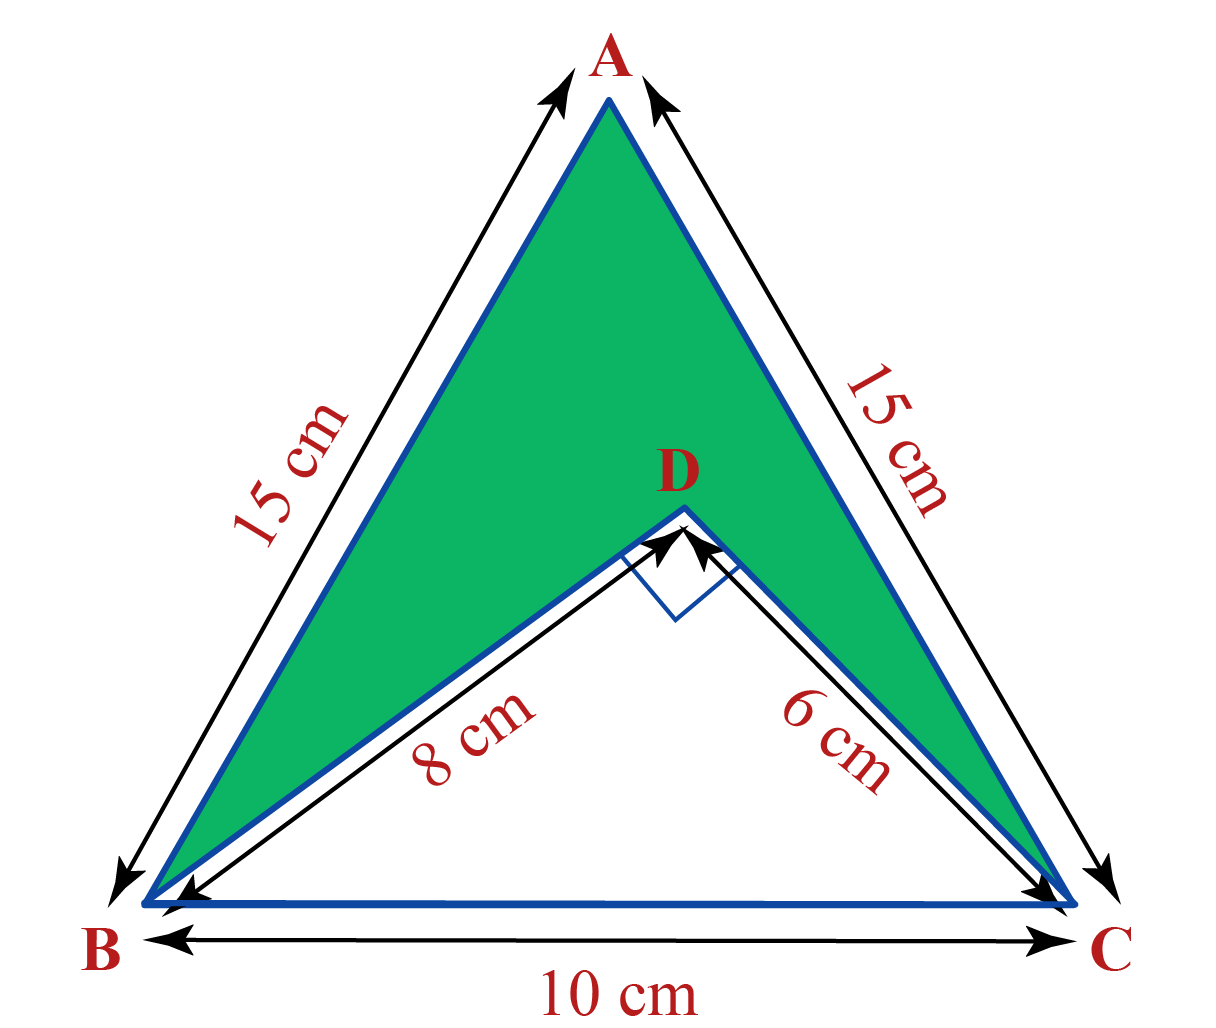 Two triangles are shown within each other. We have to find the area of the shaded region within the larger triangle.